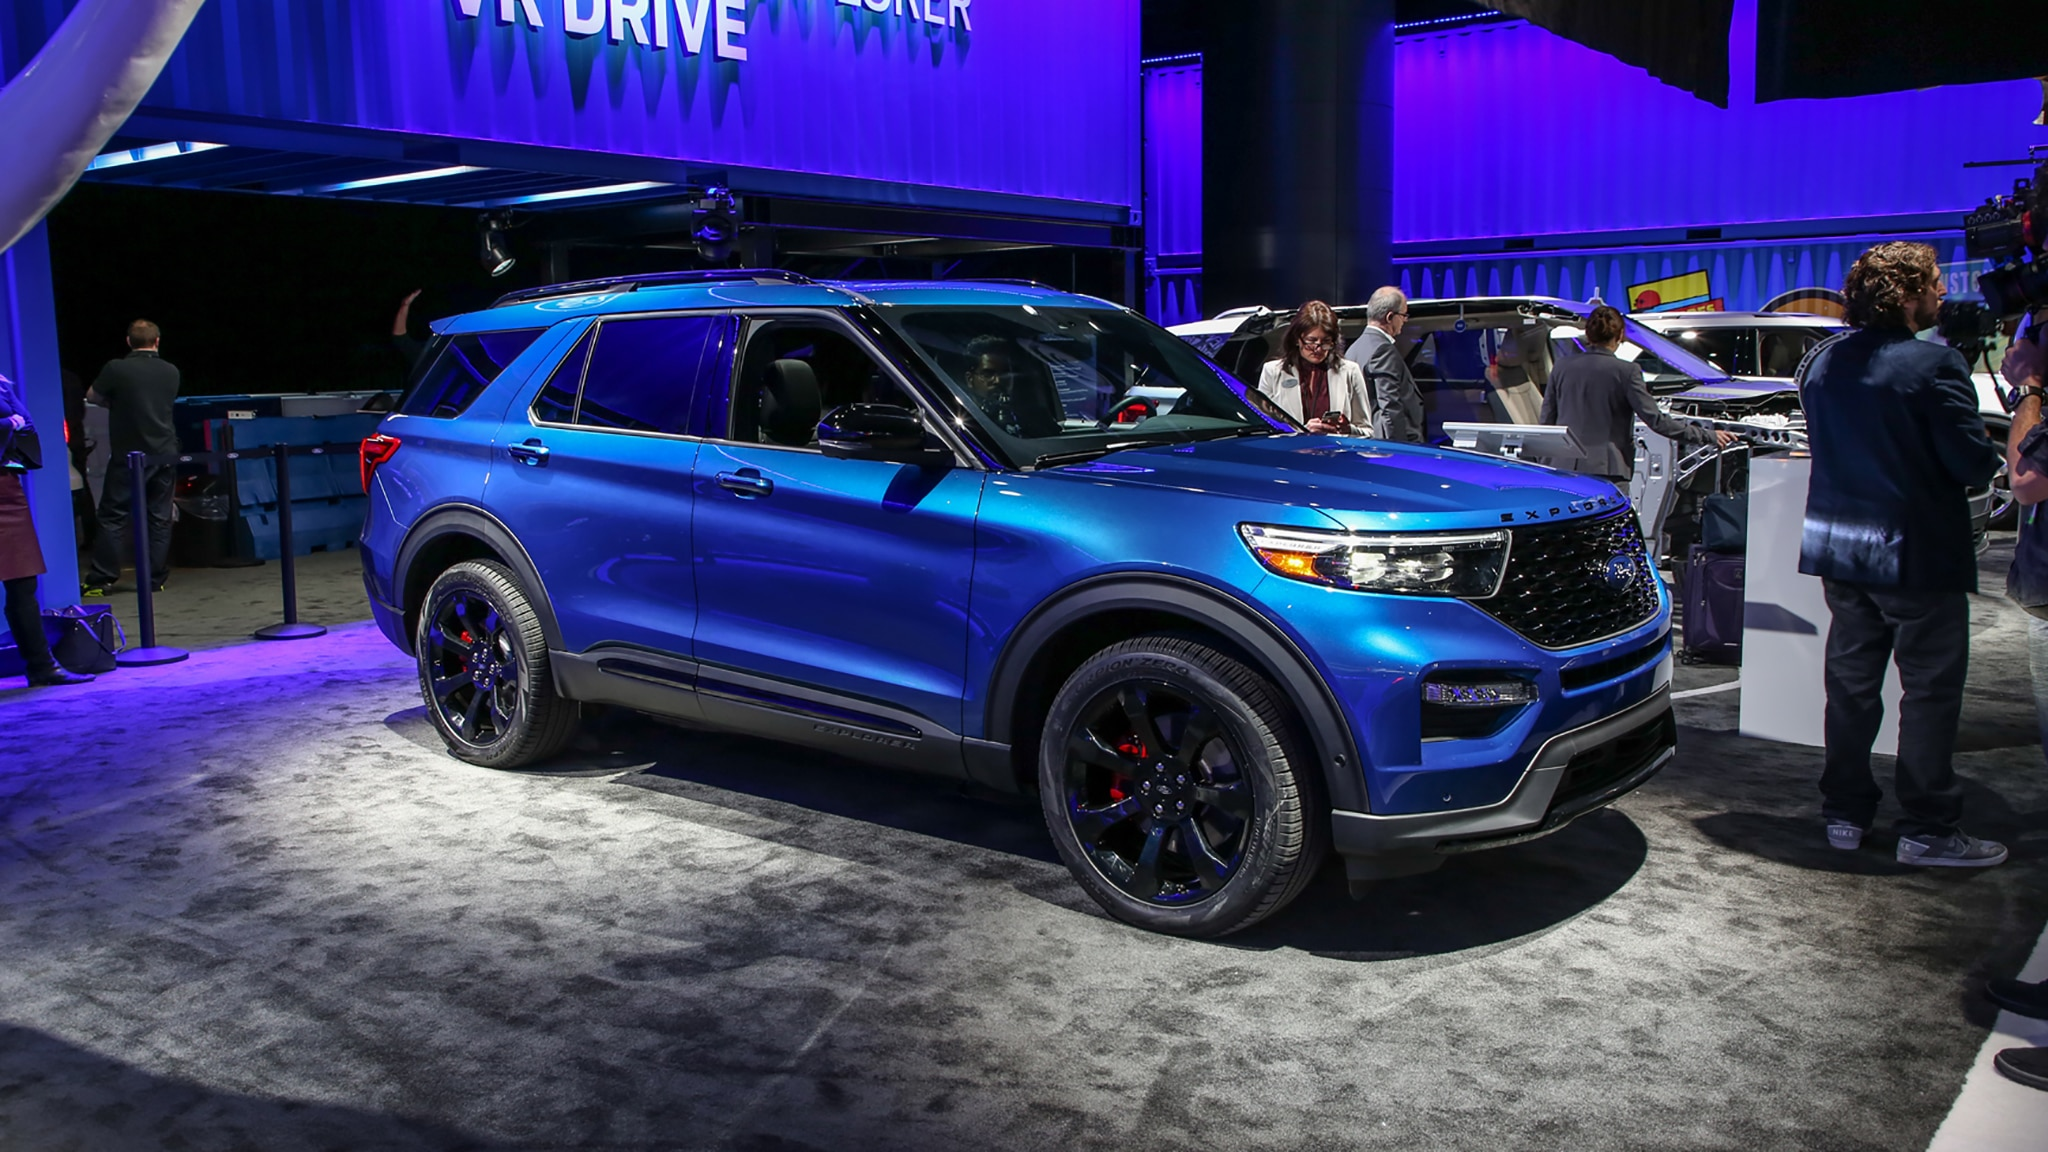 55 All New 2020 Ford Explorer Sports Redesign and Concept